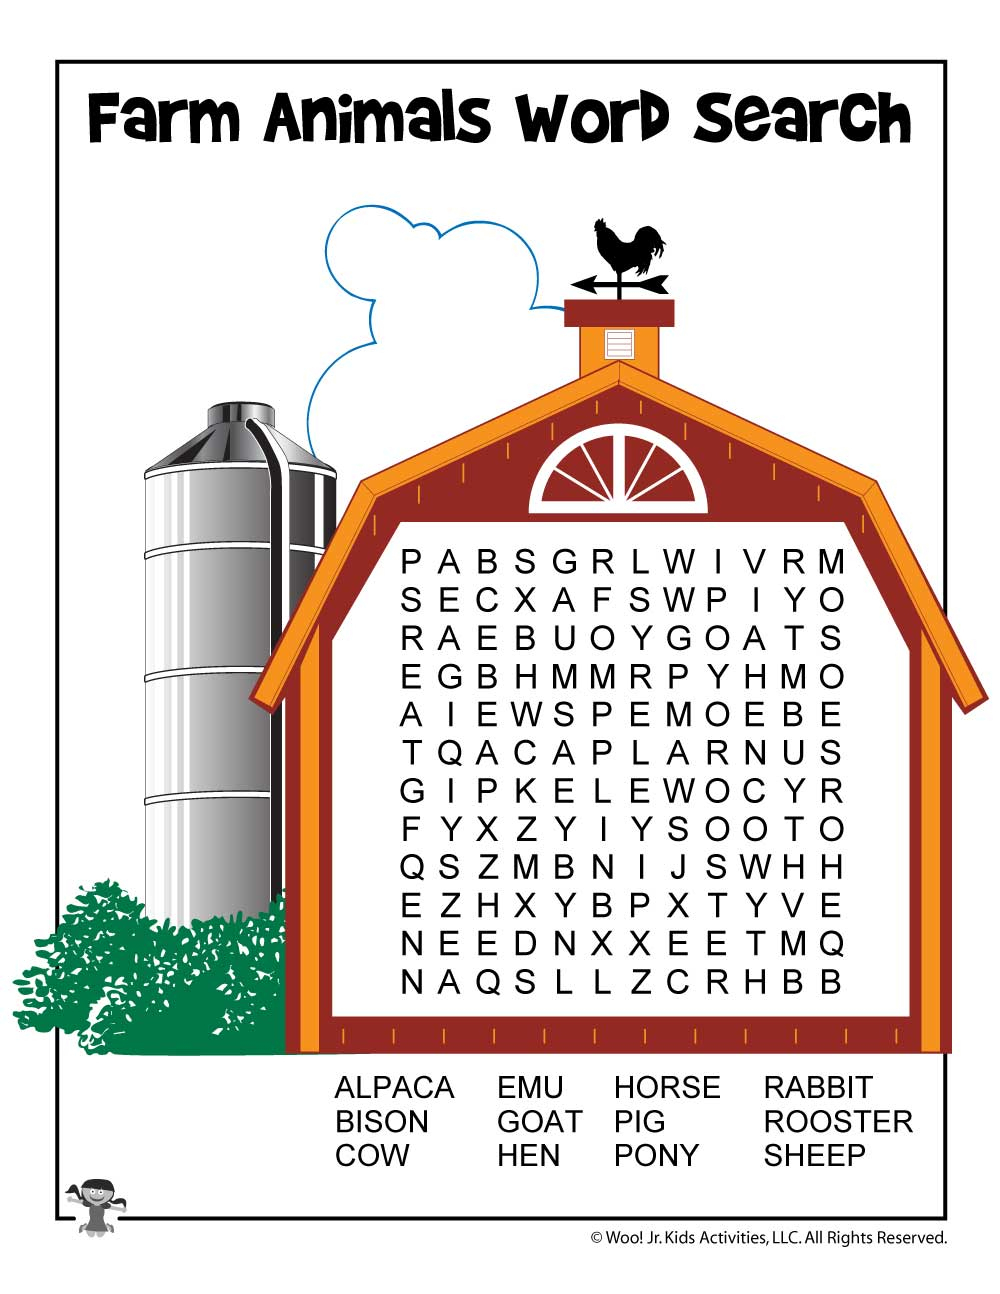 Farm Animal Word Search Printable | Woo! Jr. Kids Activities